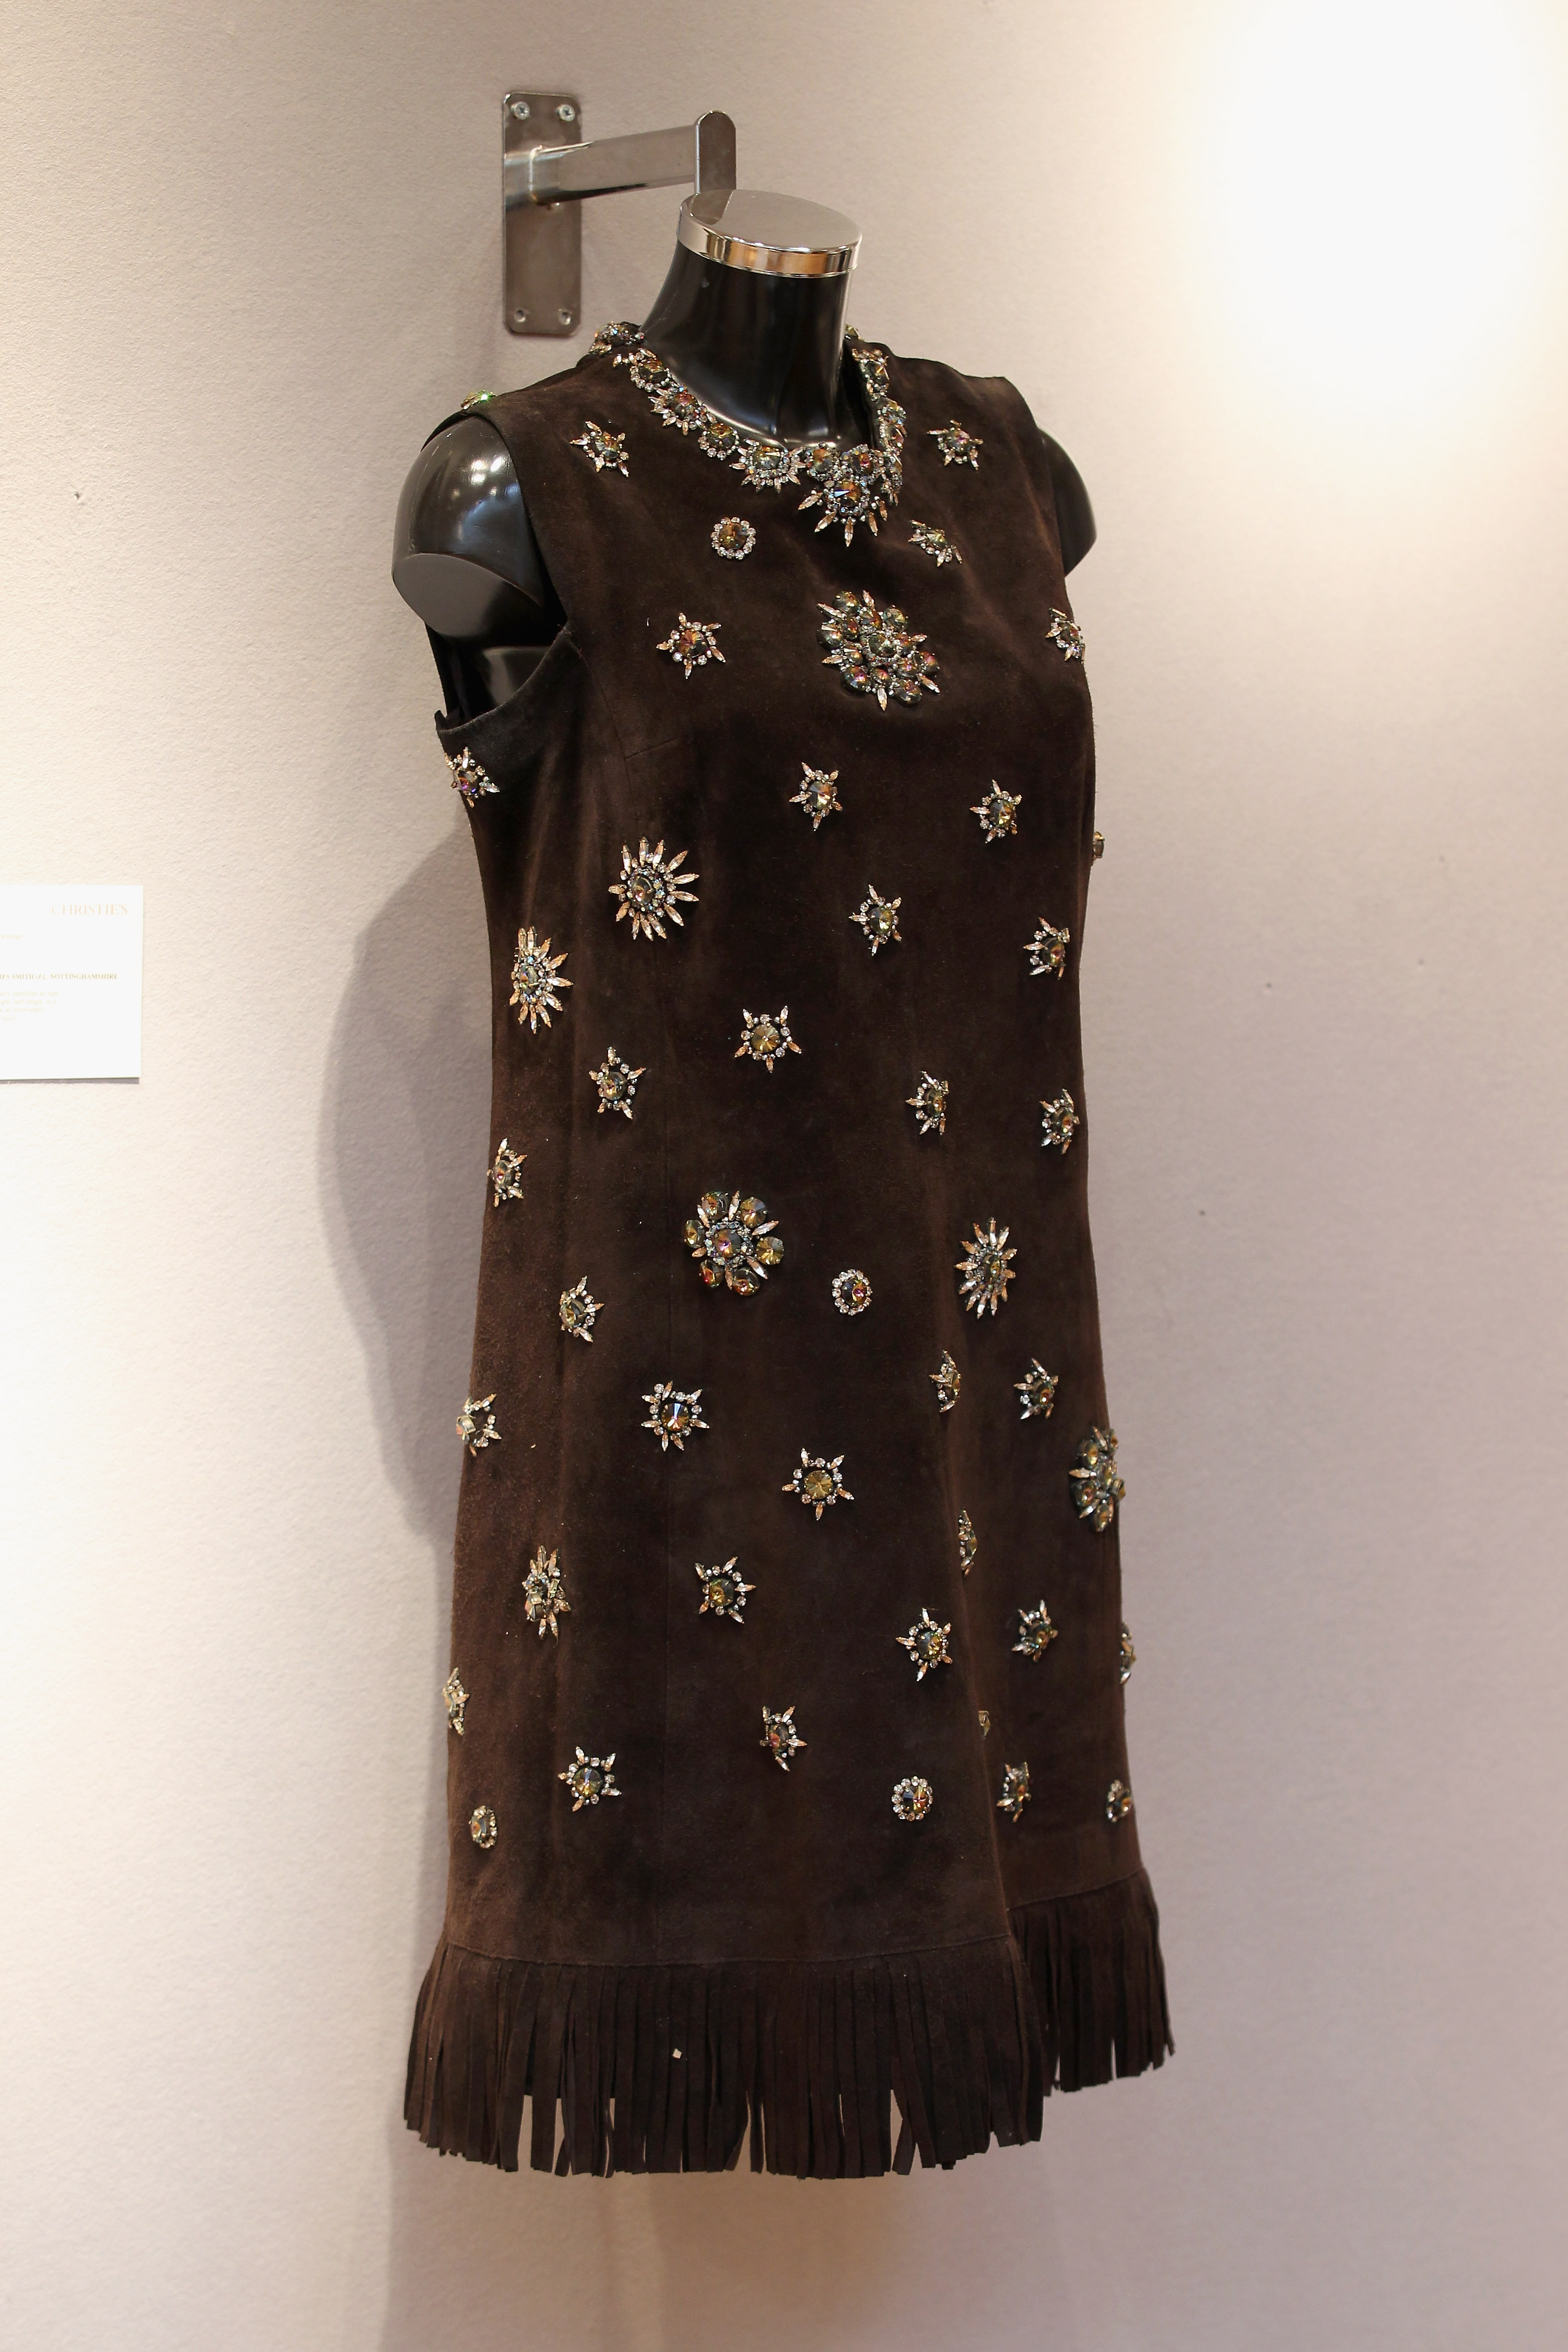 Christie's Displays 20th Century Couture Dresses And Historical Costumes Ahead Of Their Fashion Auction